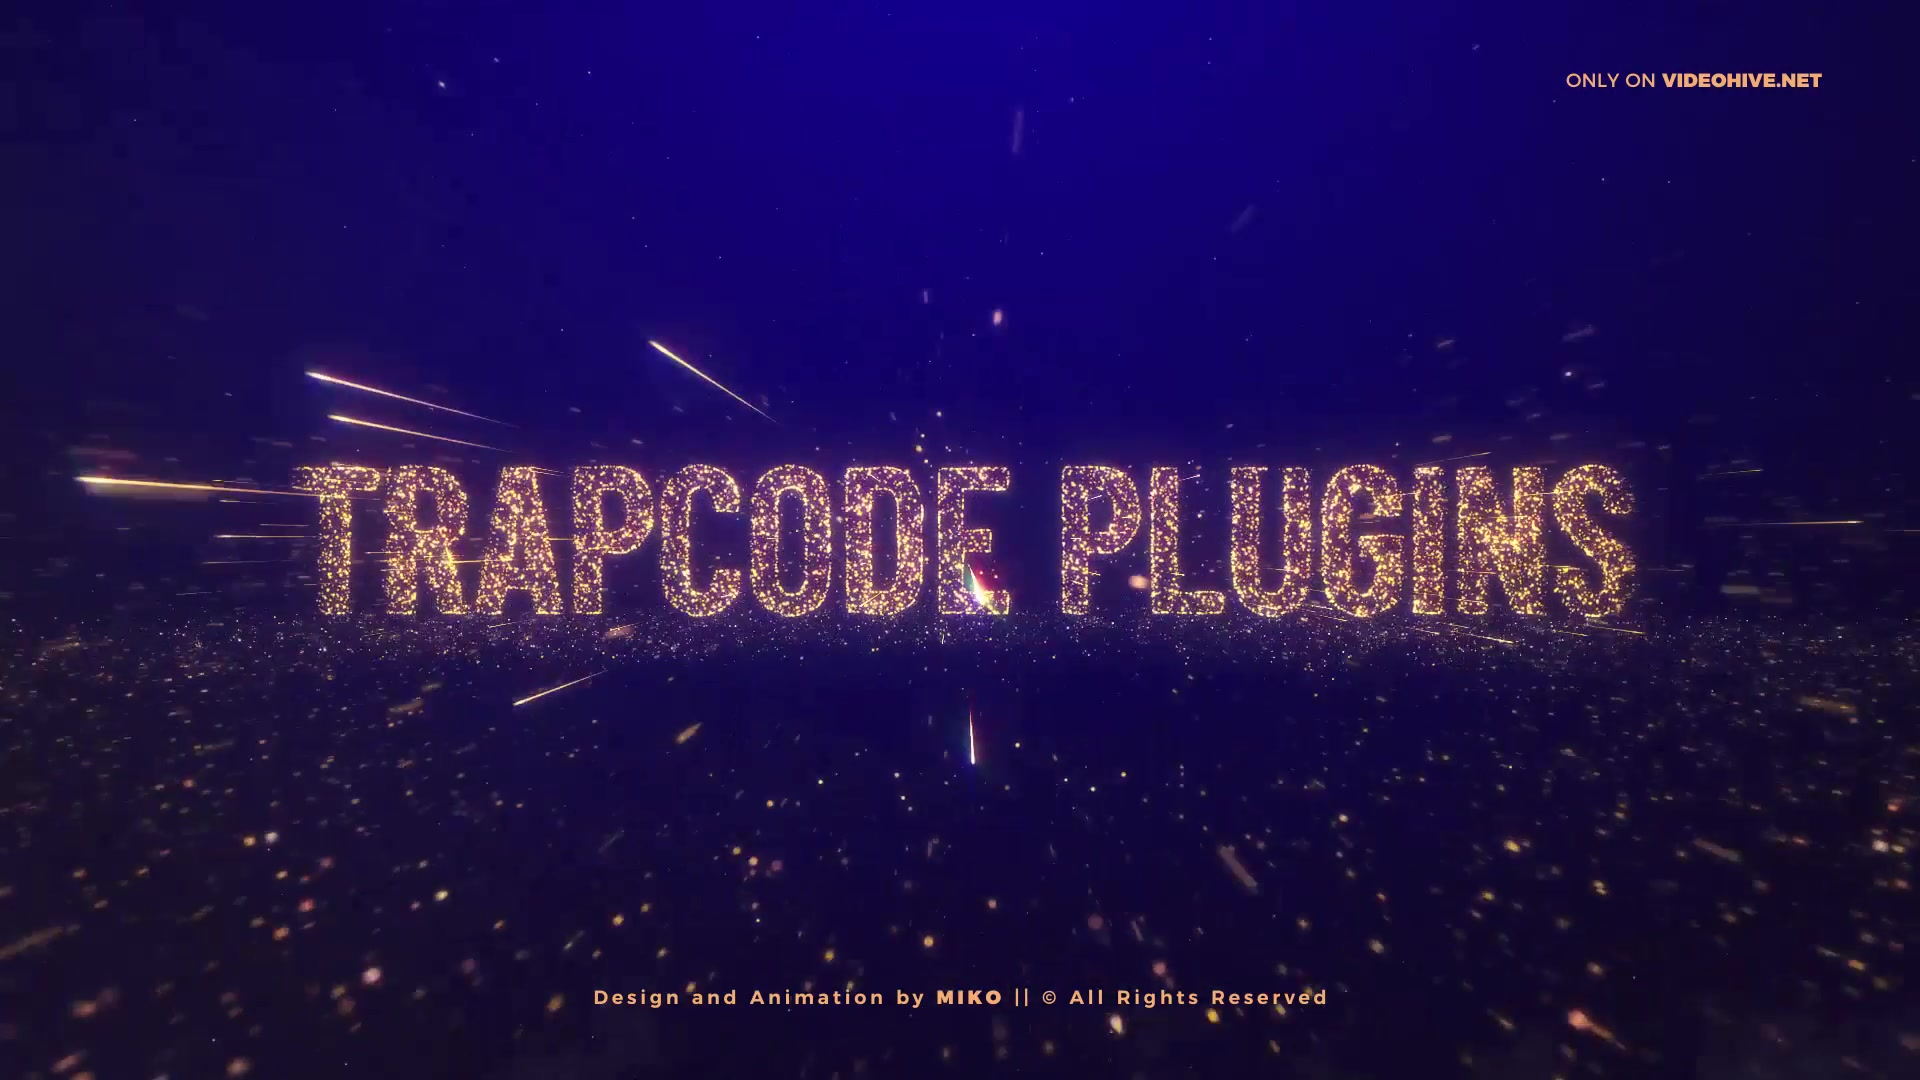 Awards Gold Particles Titles Videohive 24513891 After Effects Image 5